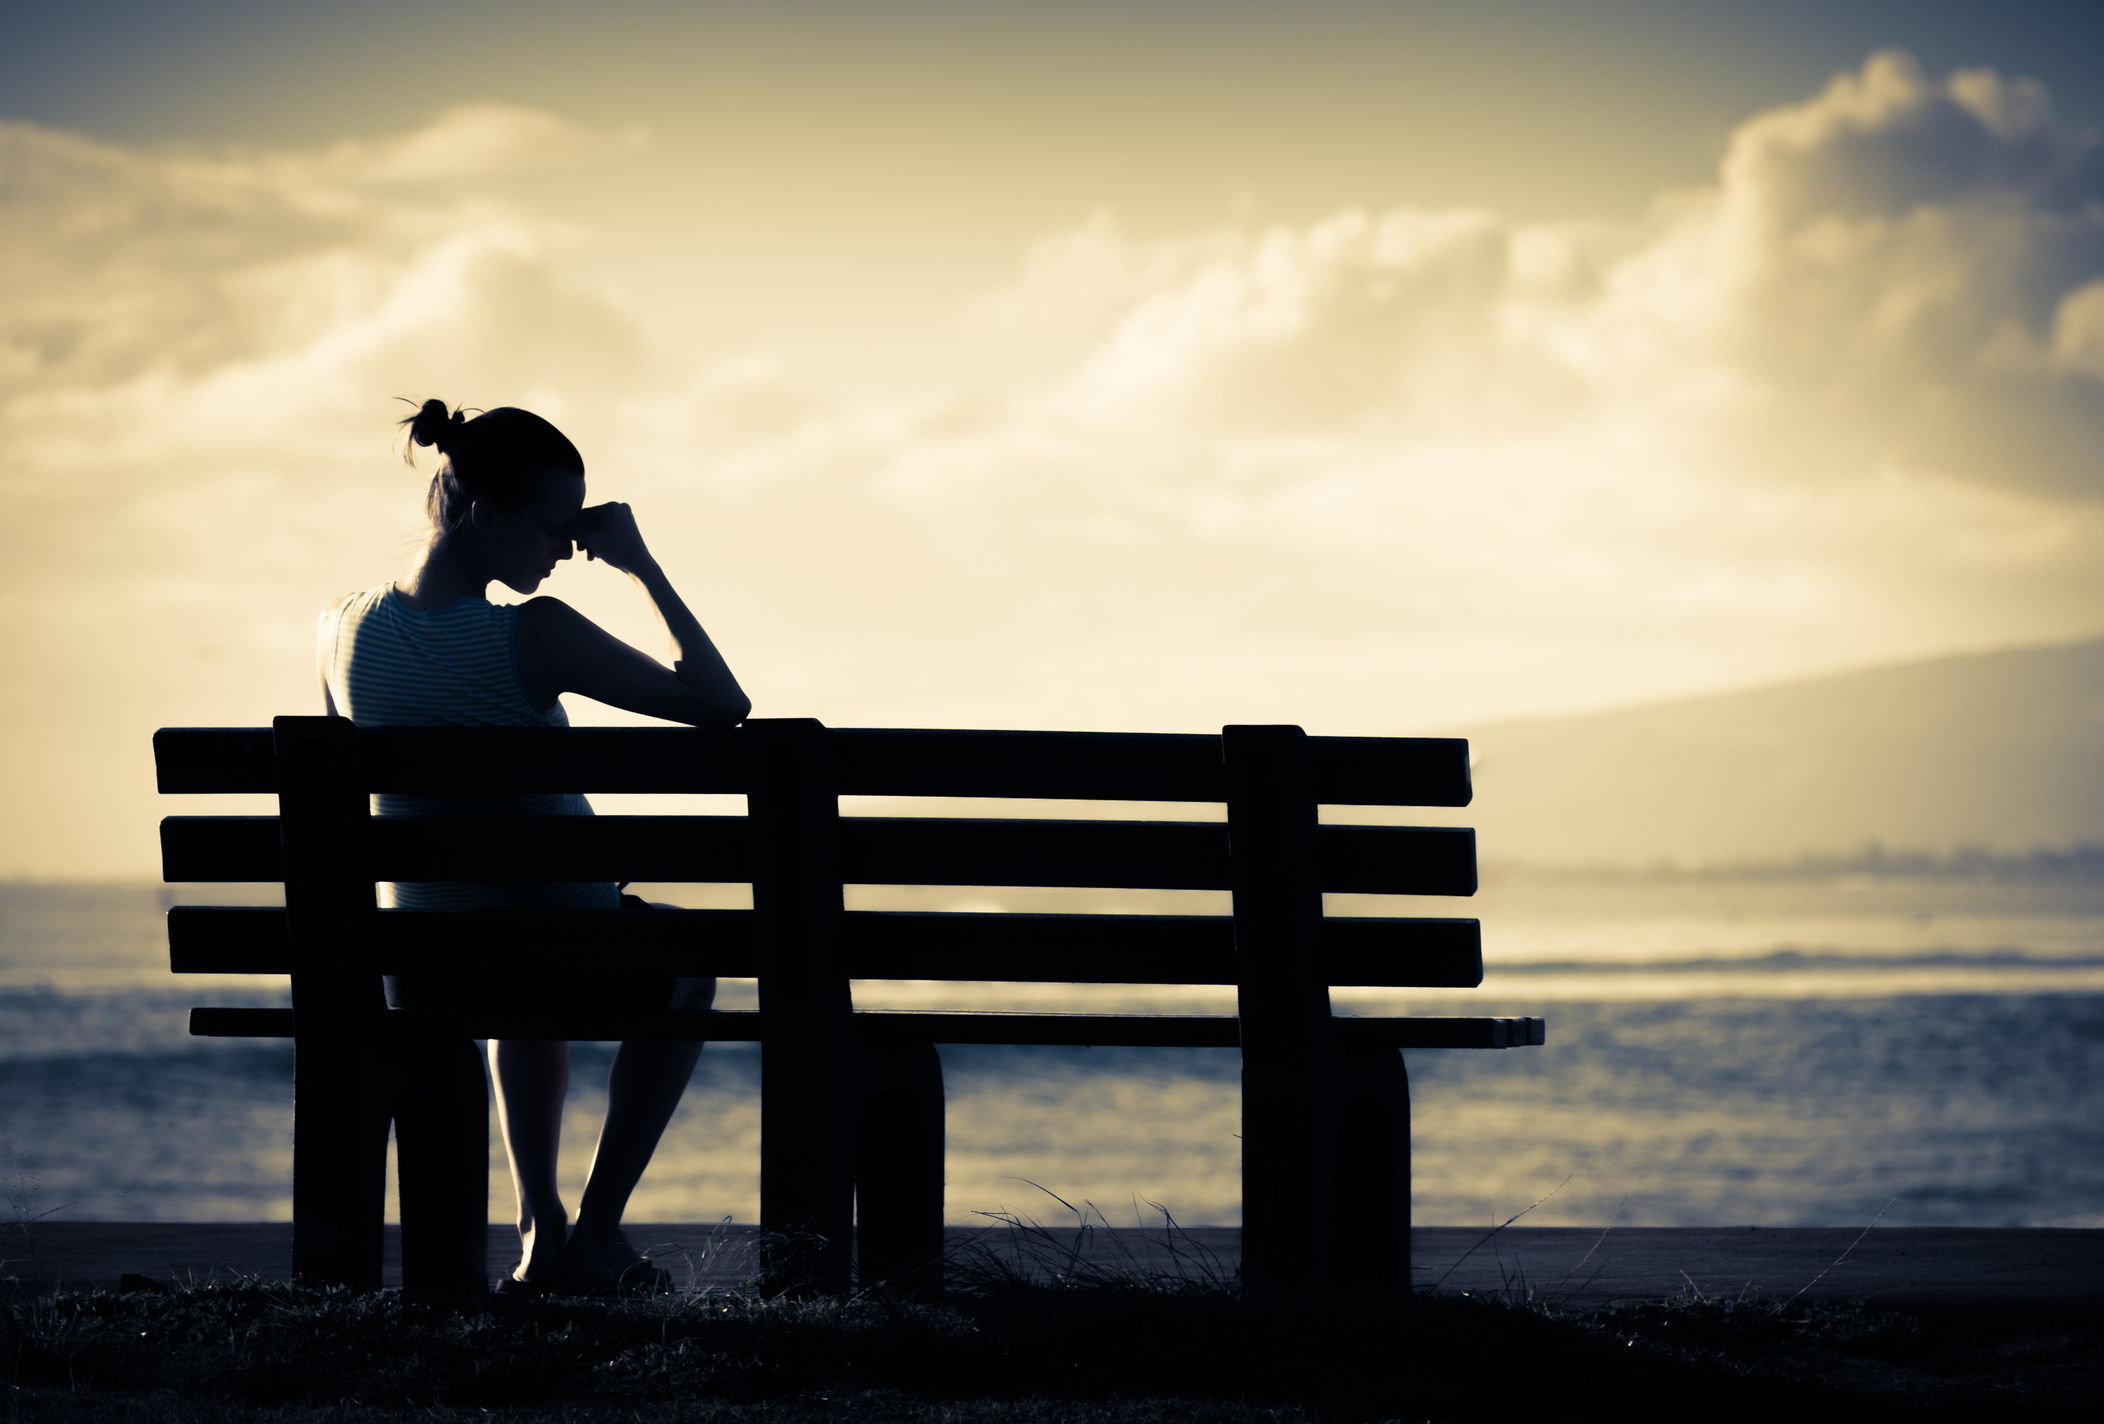 Silhouette of an upset woman on a waterfront bench.